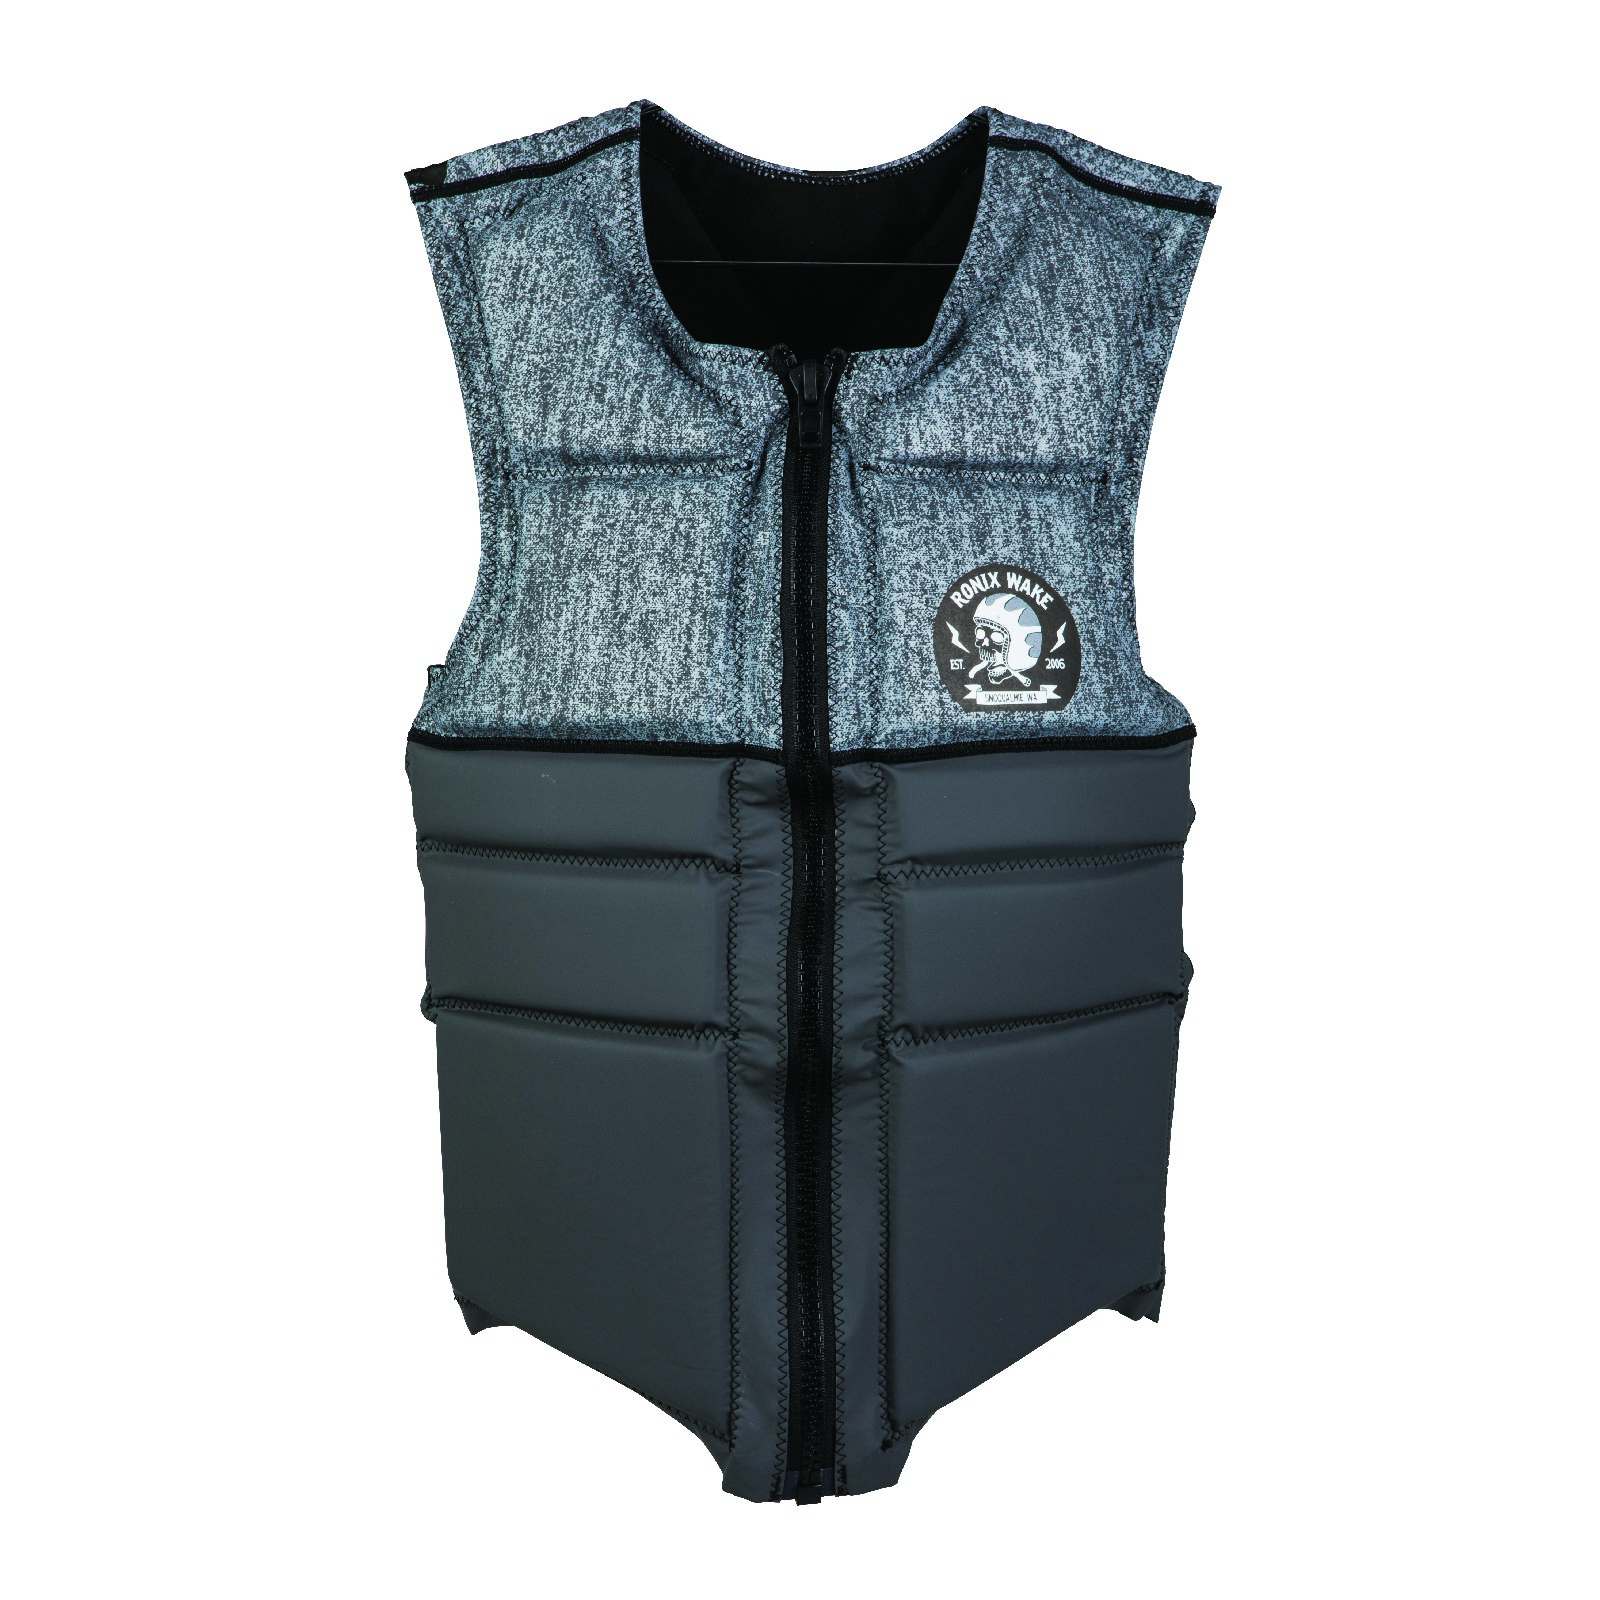 PARKS ATHLETIC FIT VEST RONIX 2019